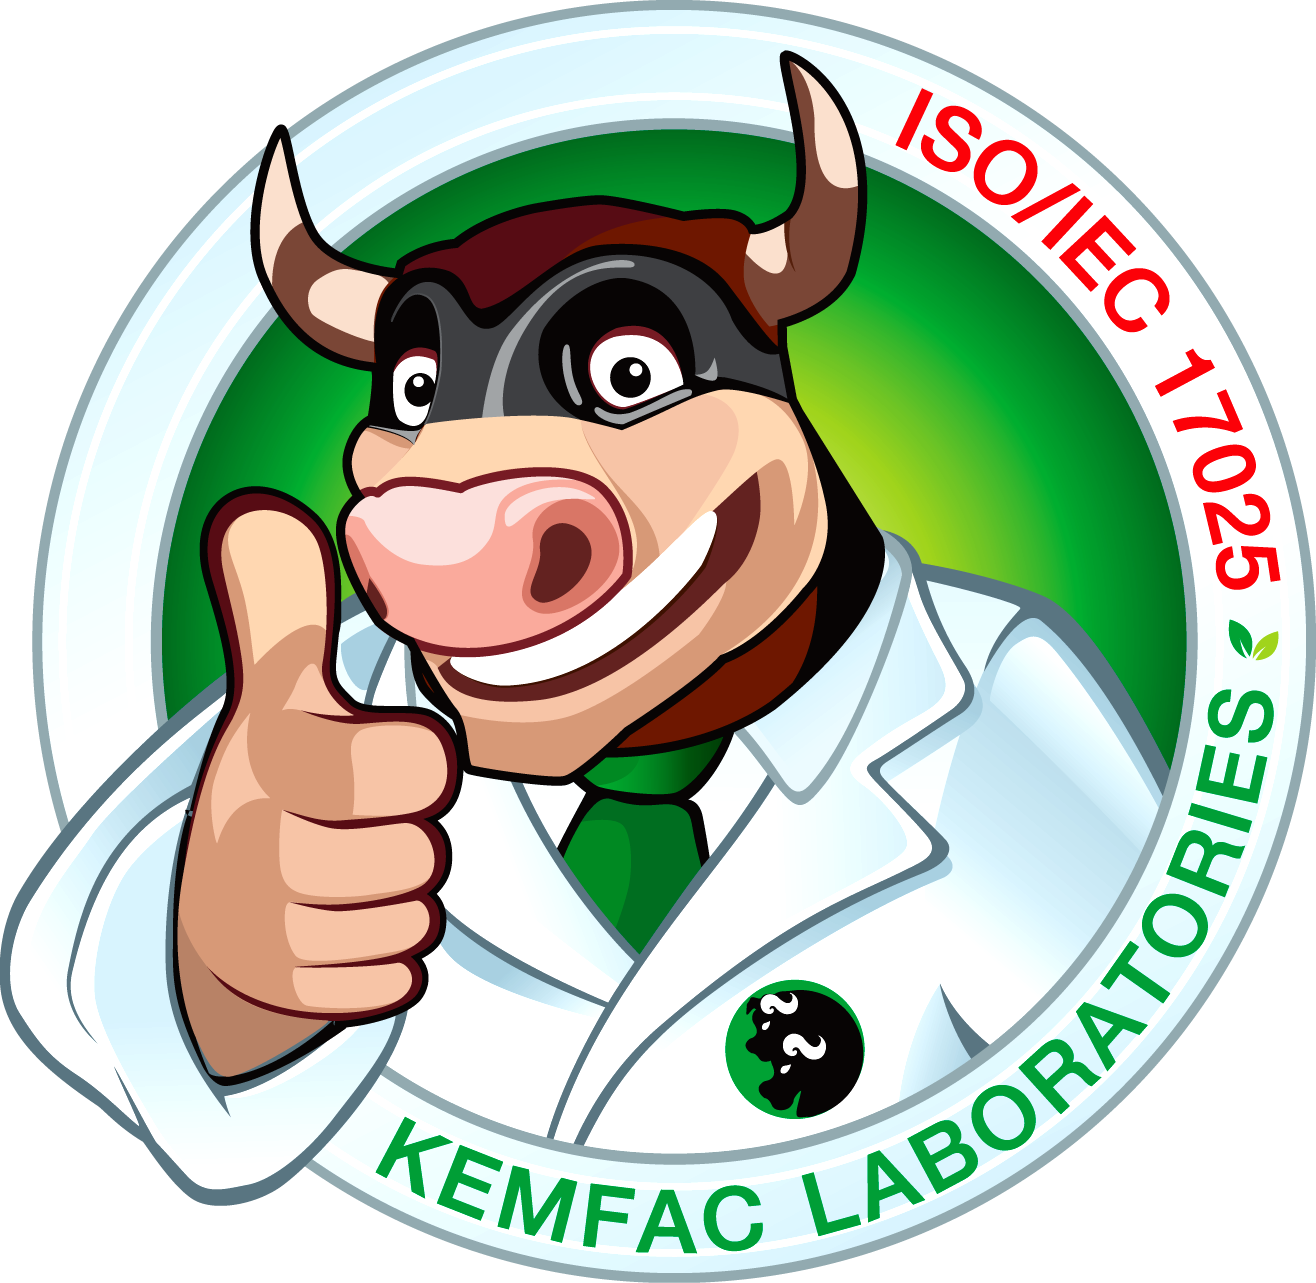 kemfac doctor logo copy